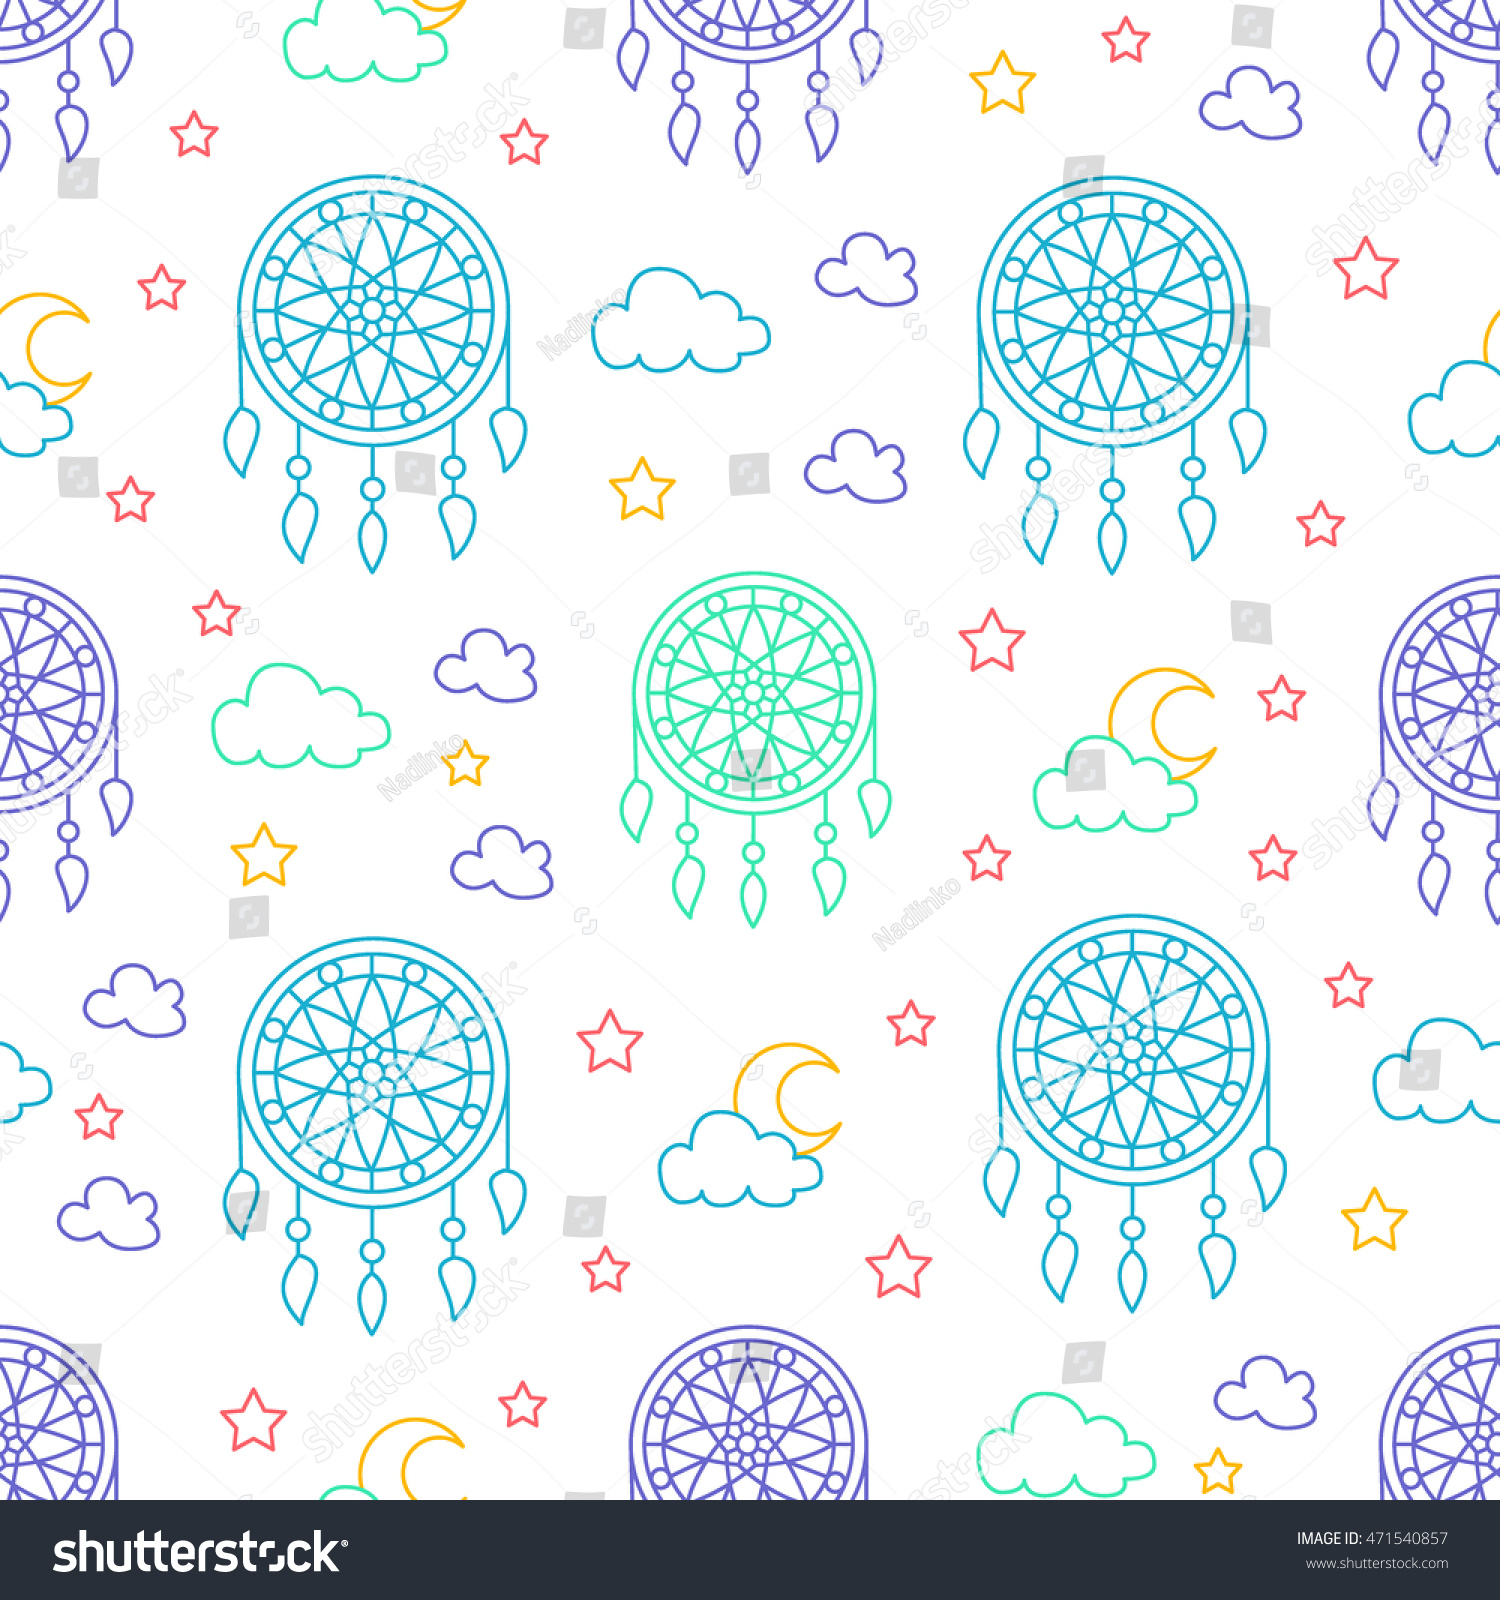 Seamless pattern with dream catchers. Elements - dreamcatcher, star, moon.  Vector illustration